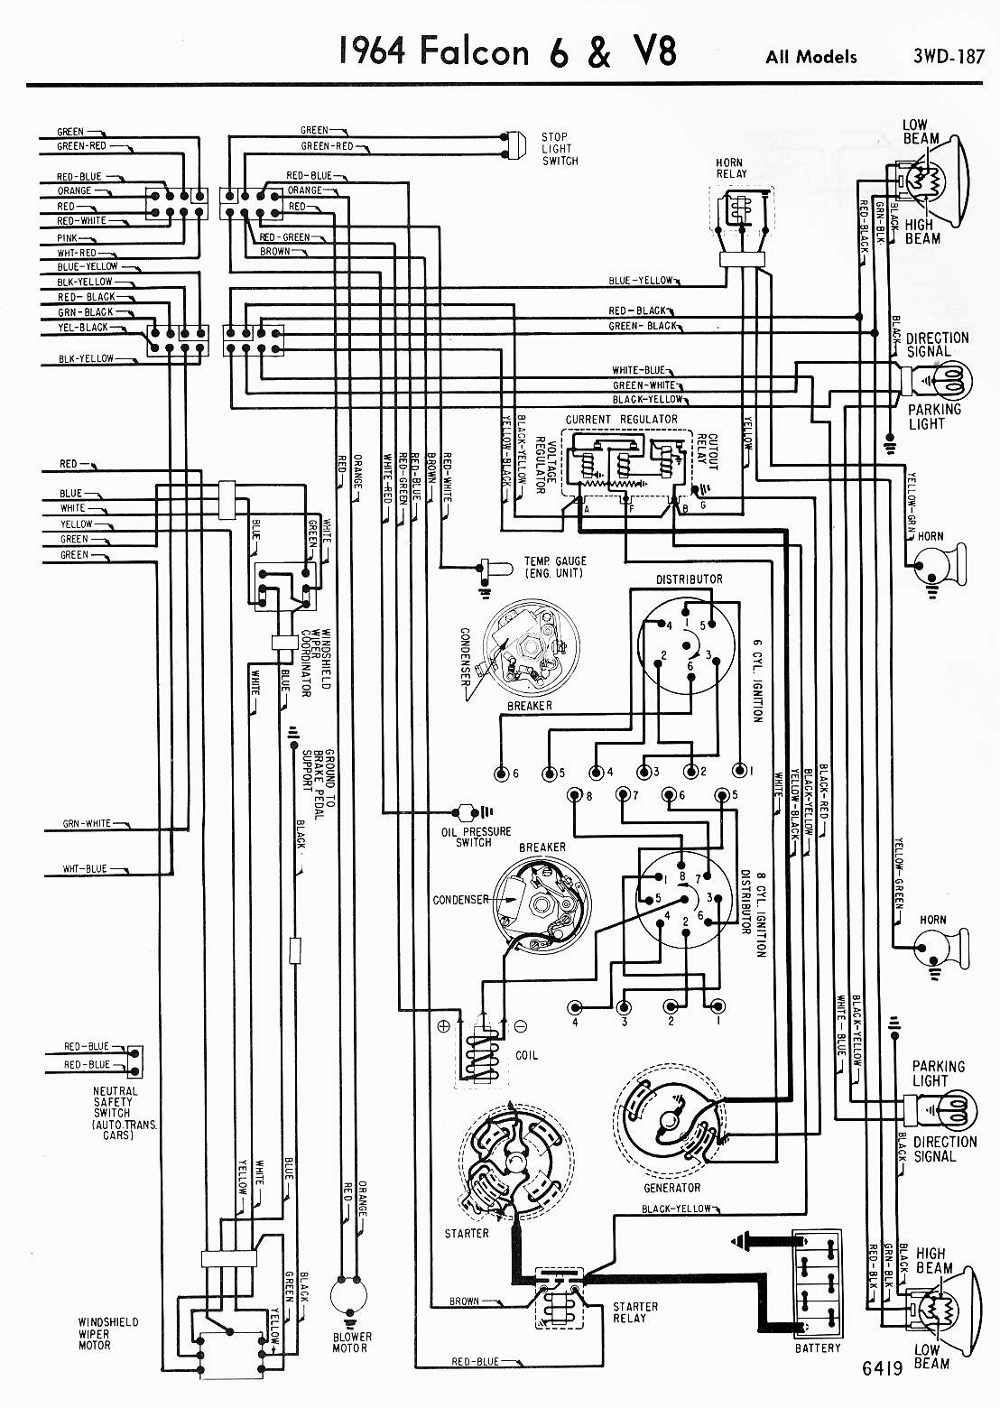 [DIAGRAM_38IU]  1964 ford falcon wiring diagram | wiring diagrams of 1964 ford 6 and v8  falcon all models part 2 ... | 1964 ford falcon, Well pump pressure switch,  Well pump | 1966 Falcon Wiring Diagrams |  | Pinterest